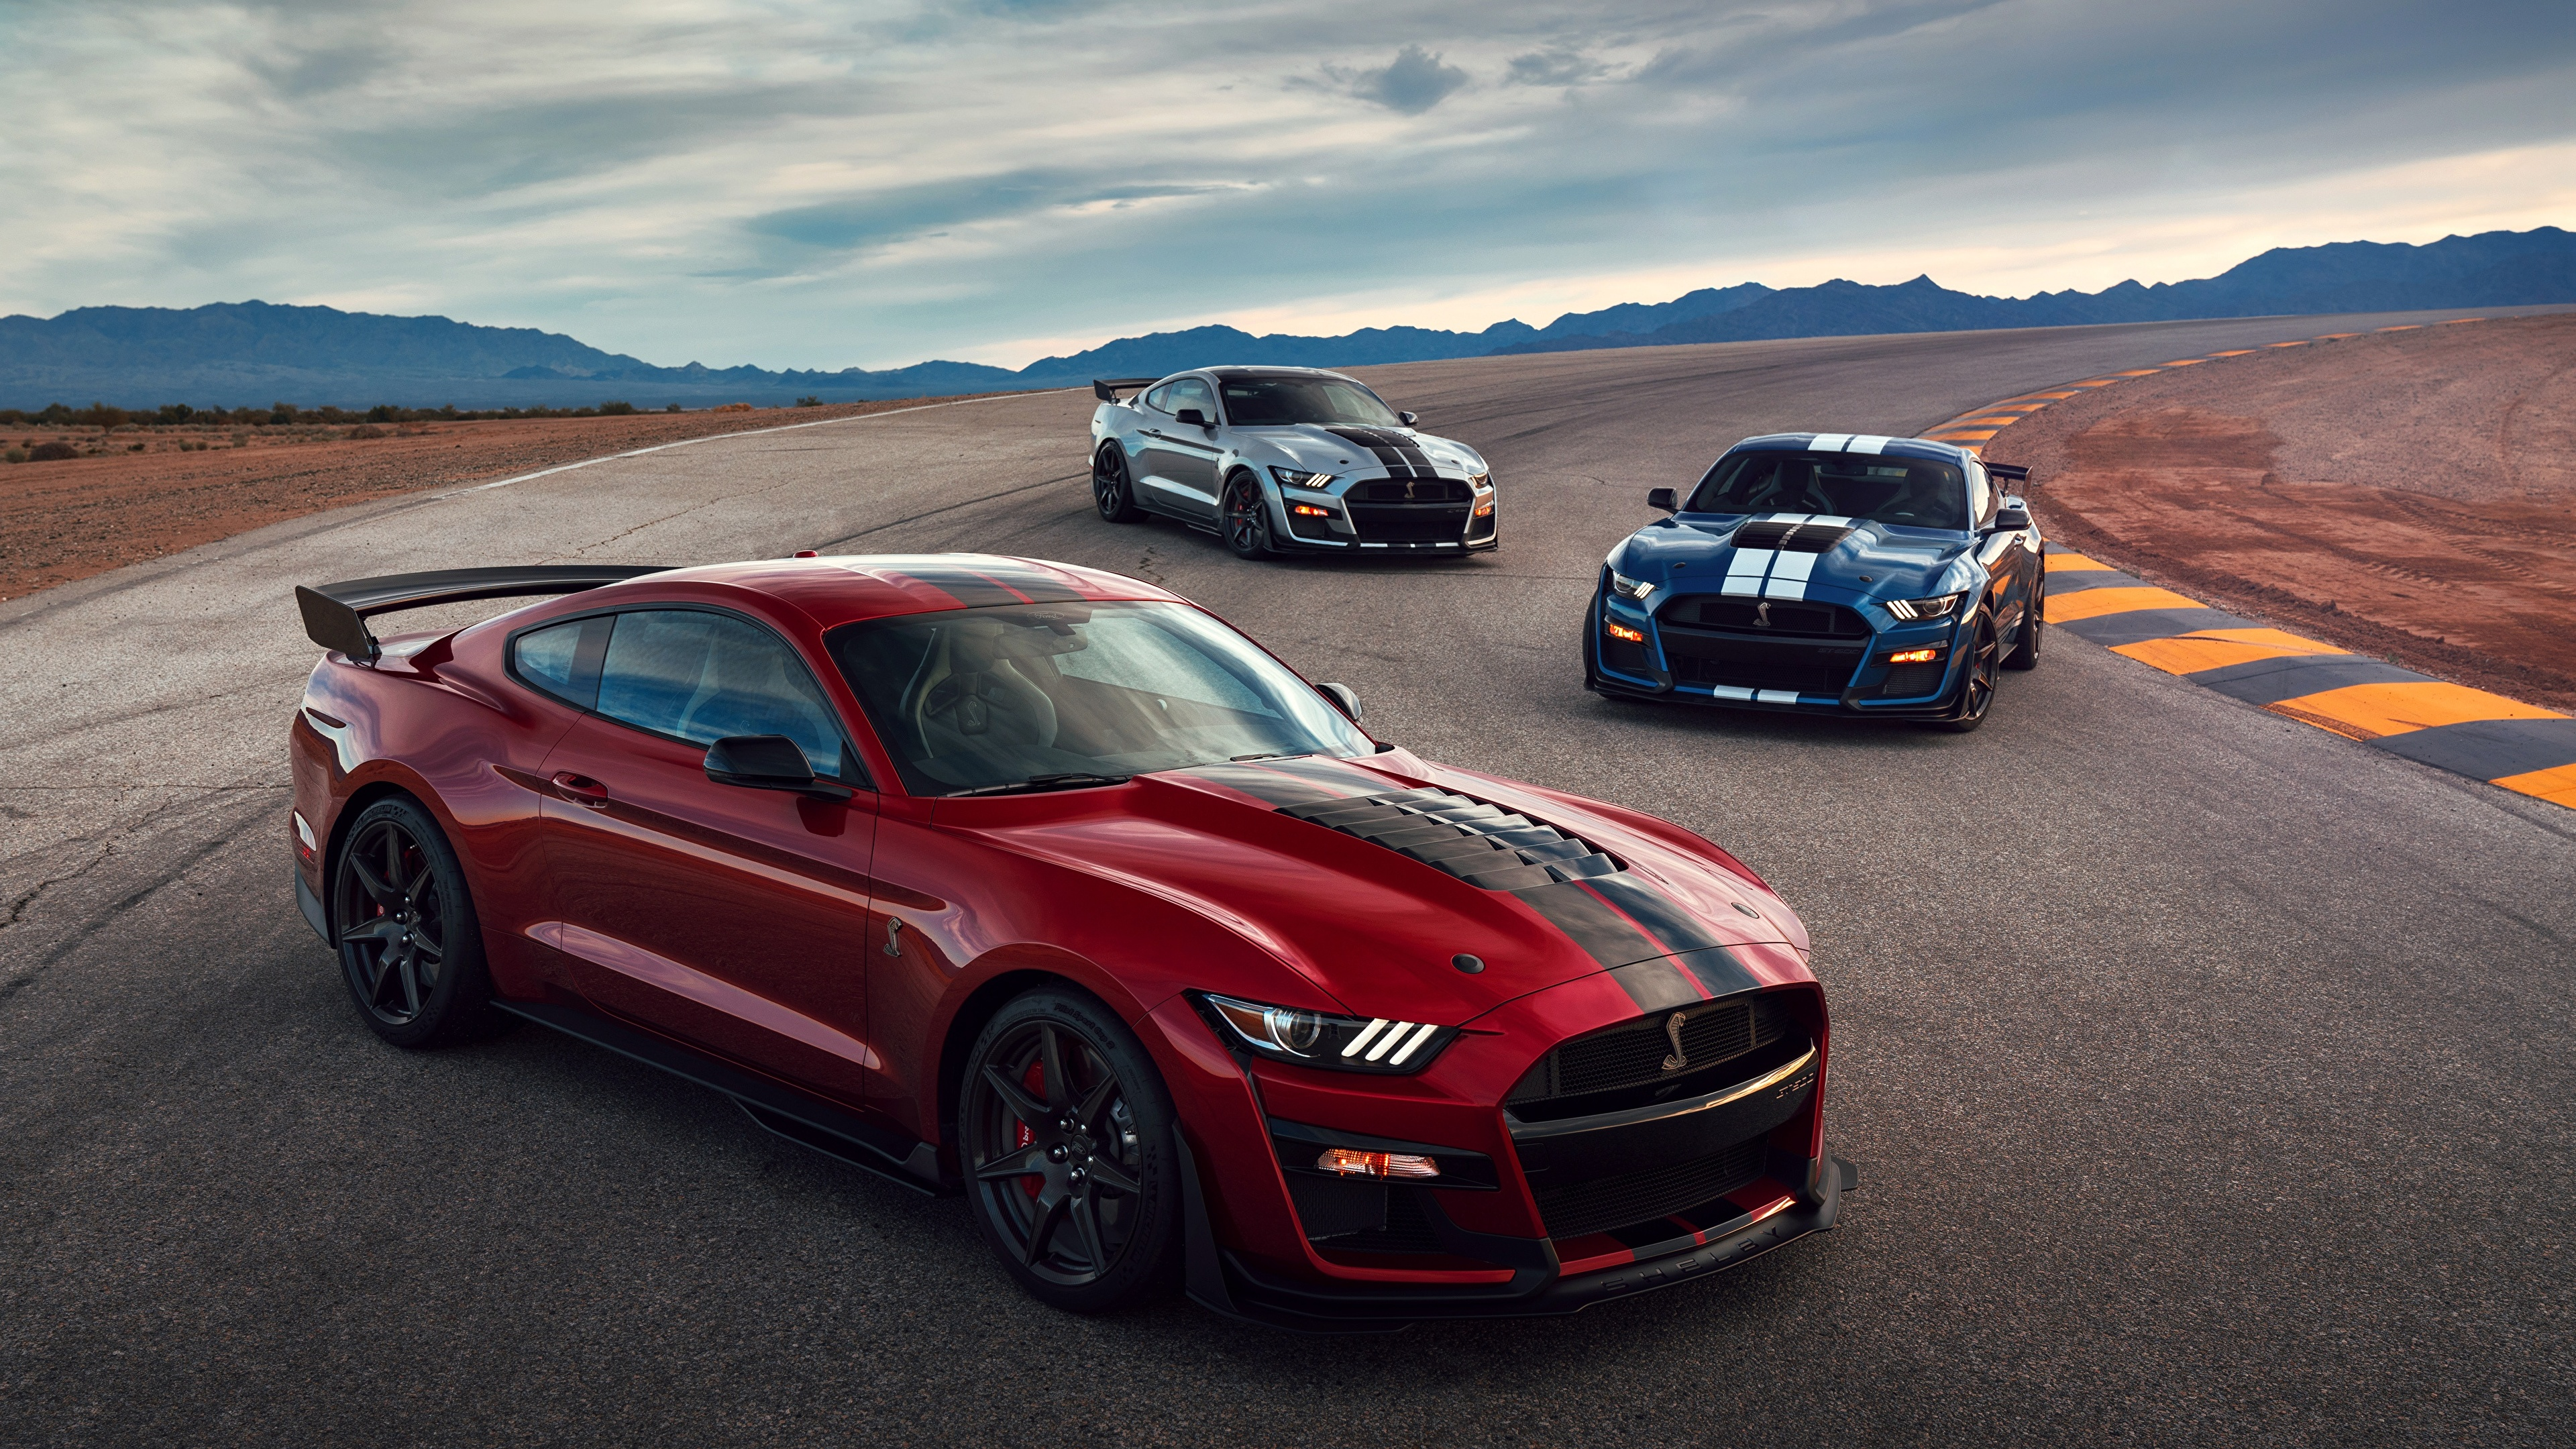 Wallpaper ford mustang shelby gt500 2019 red three 3 3840x2160